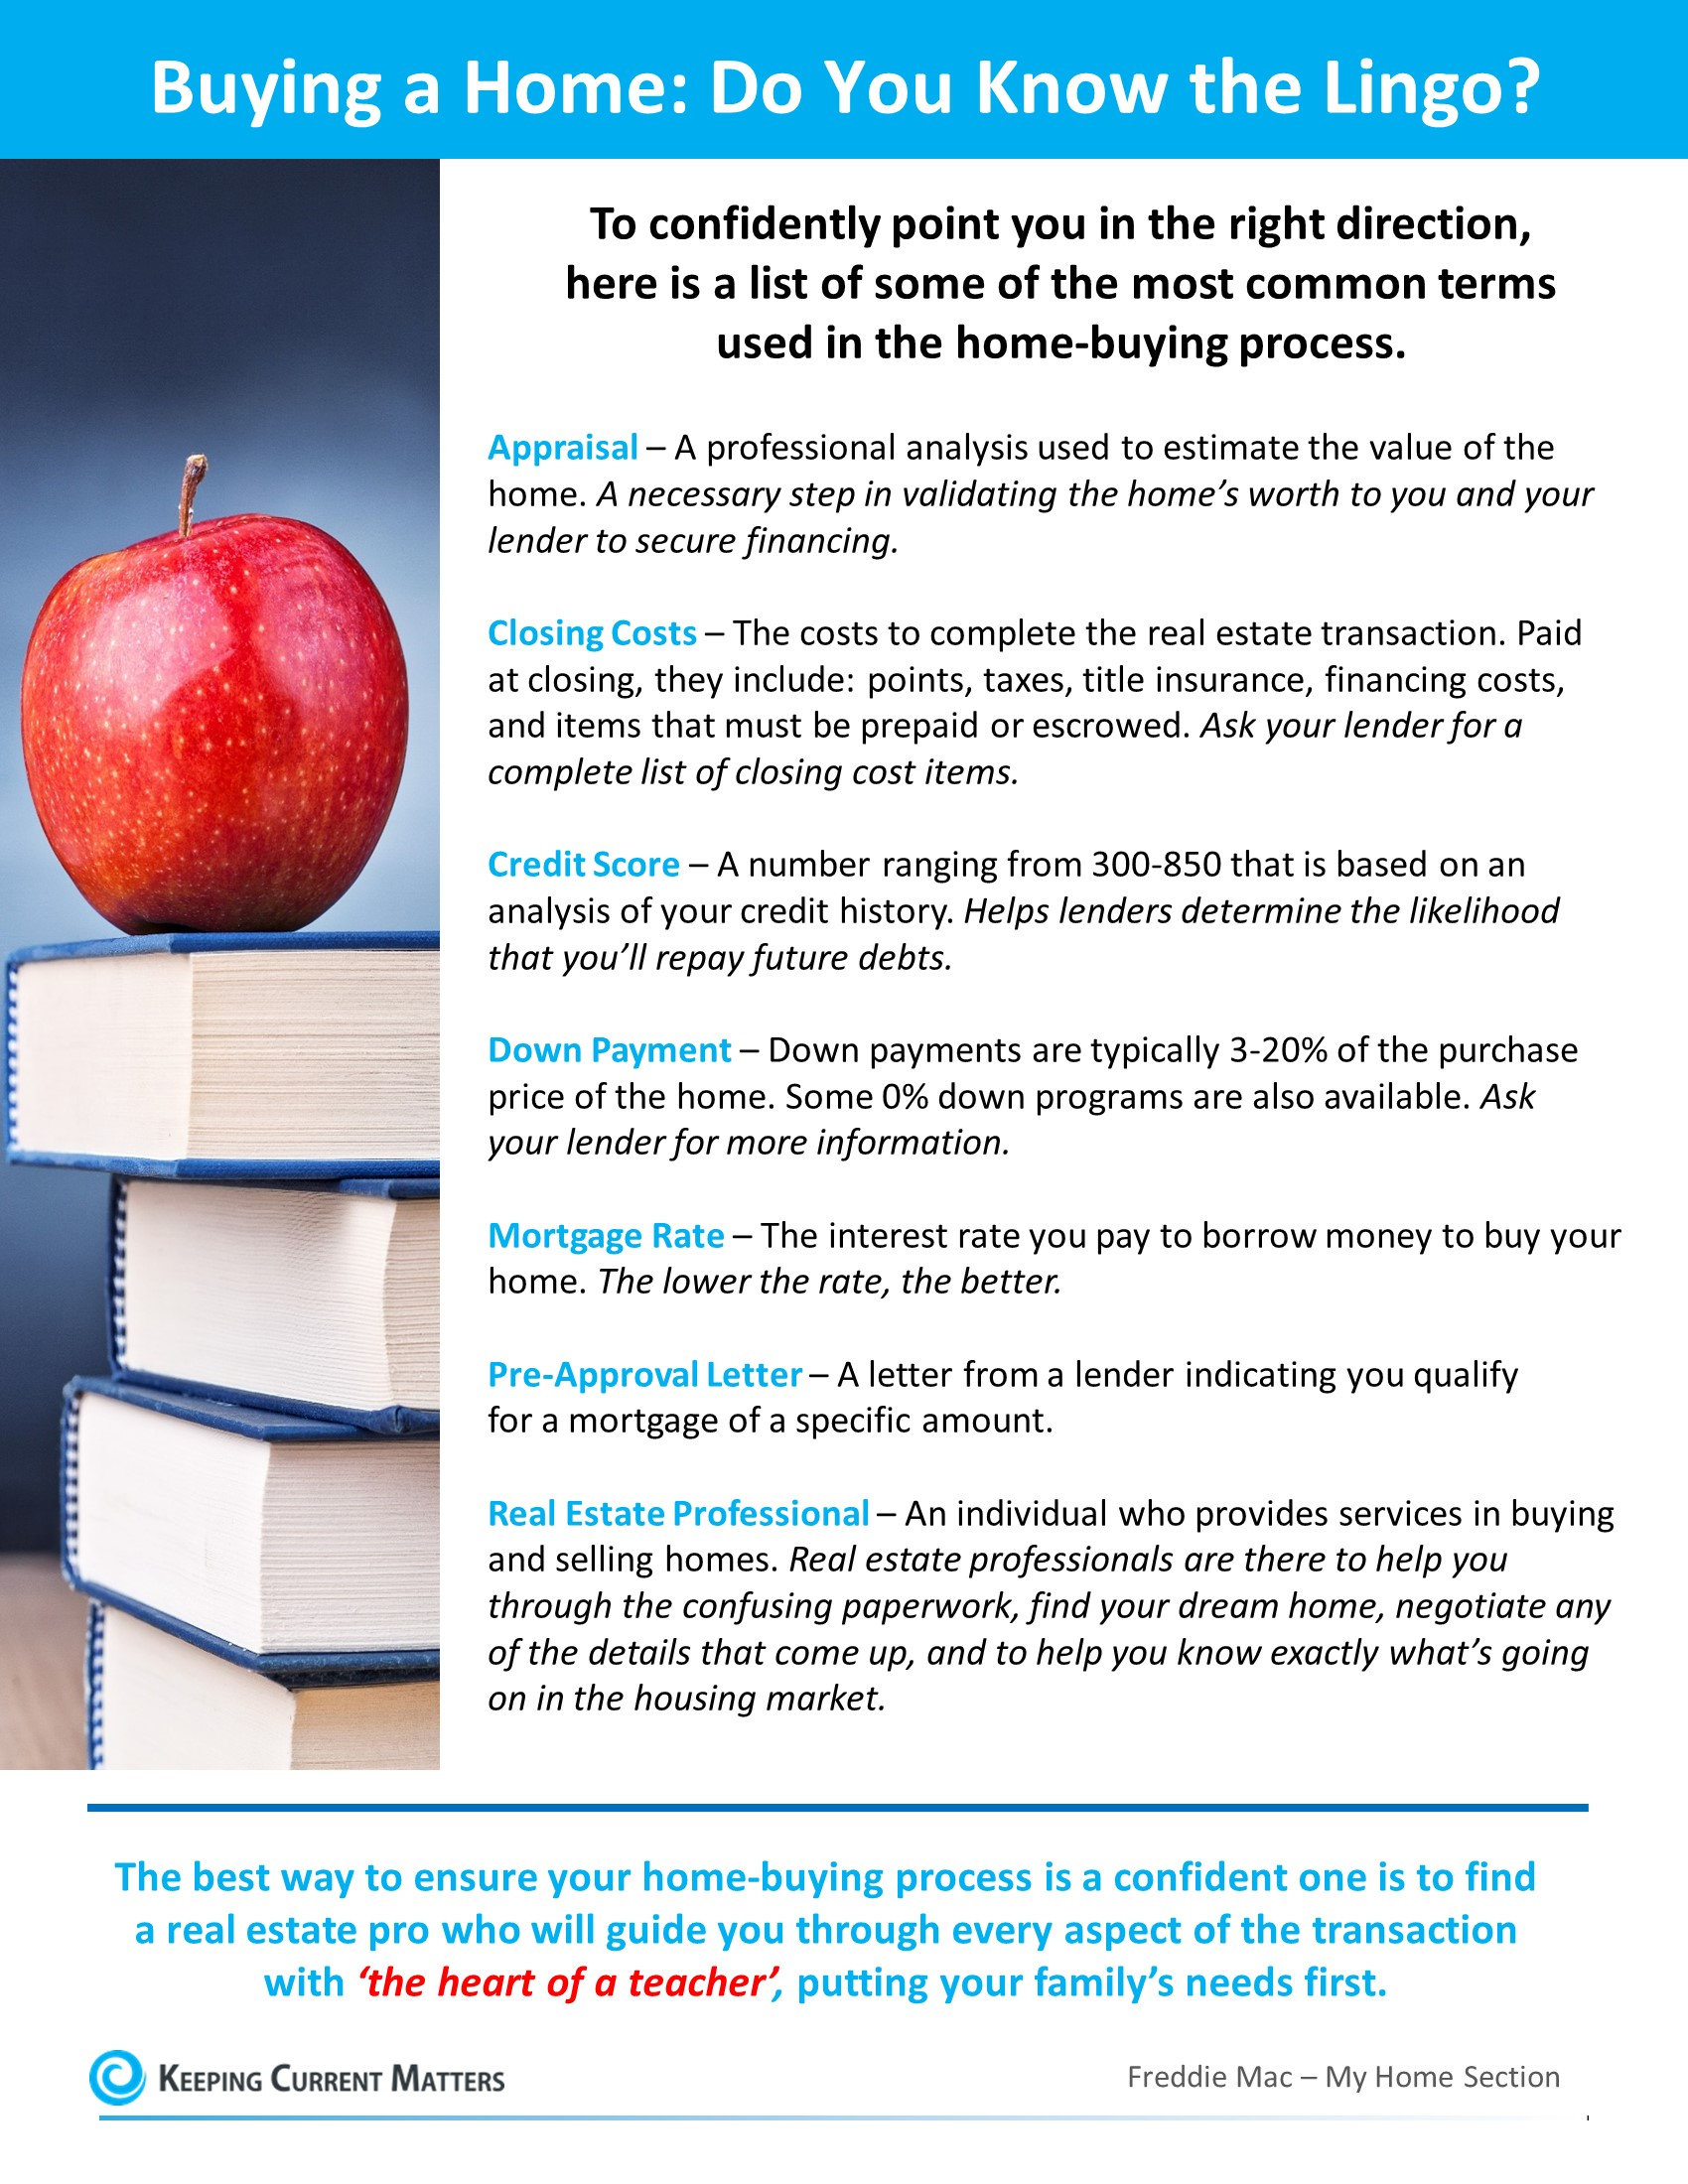 Buying a Home? Do You Know the Lingo? [INFOGRAPHIC]   Keeping Current Matters